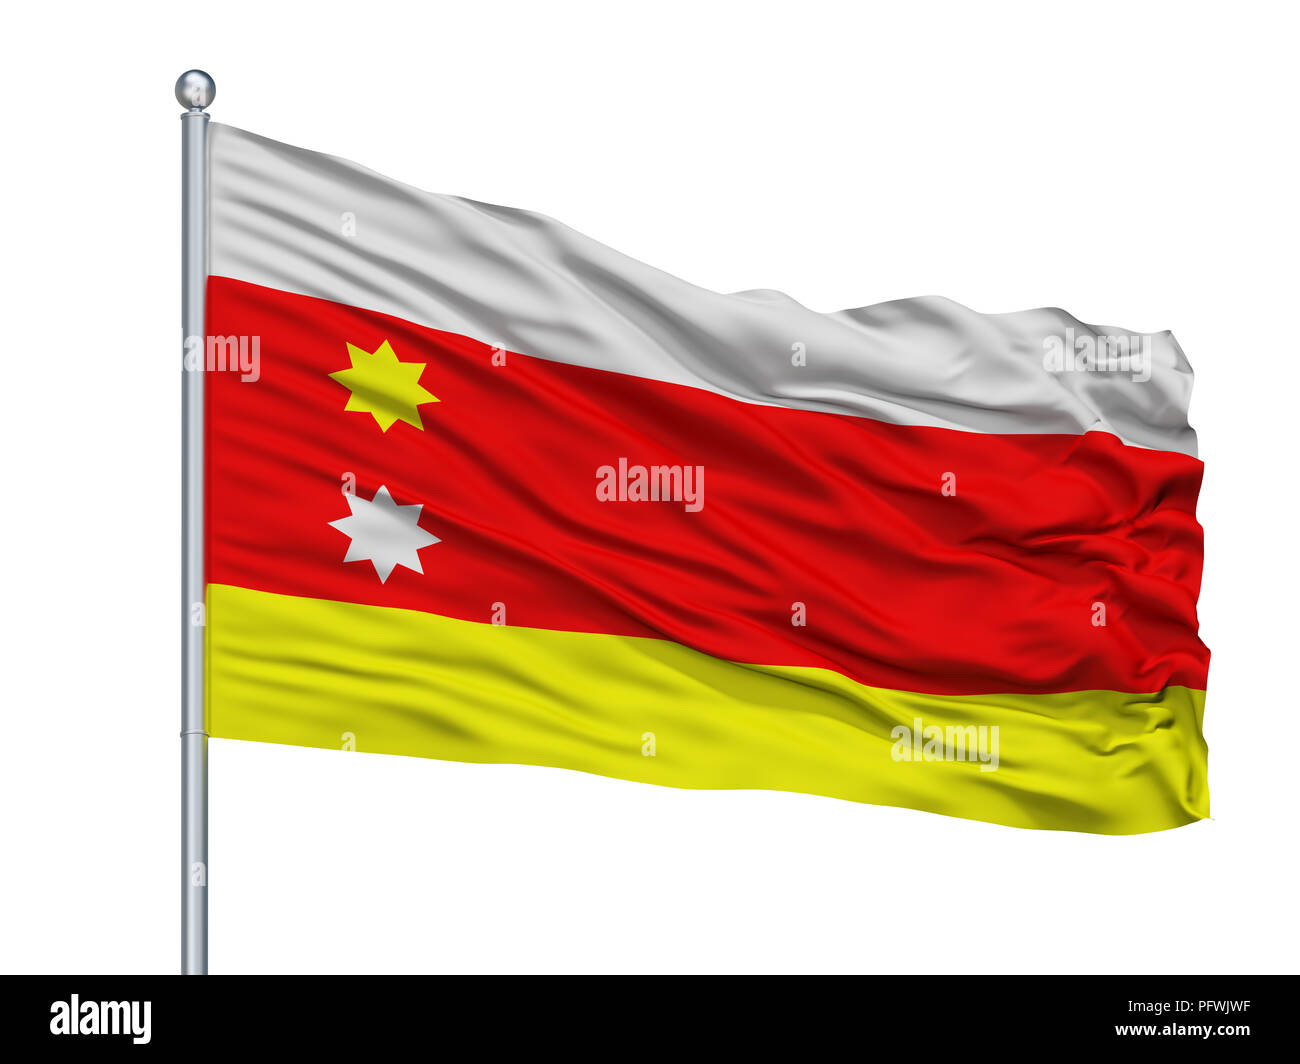 Tlaquepaque City Flag On Flagpole, Mexico, Isolated On White Background - Stock Image